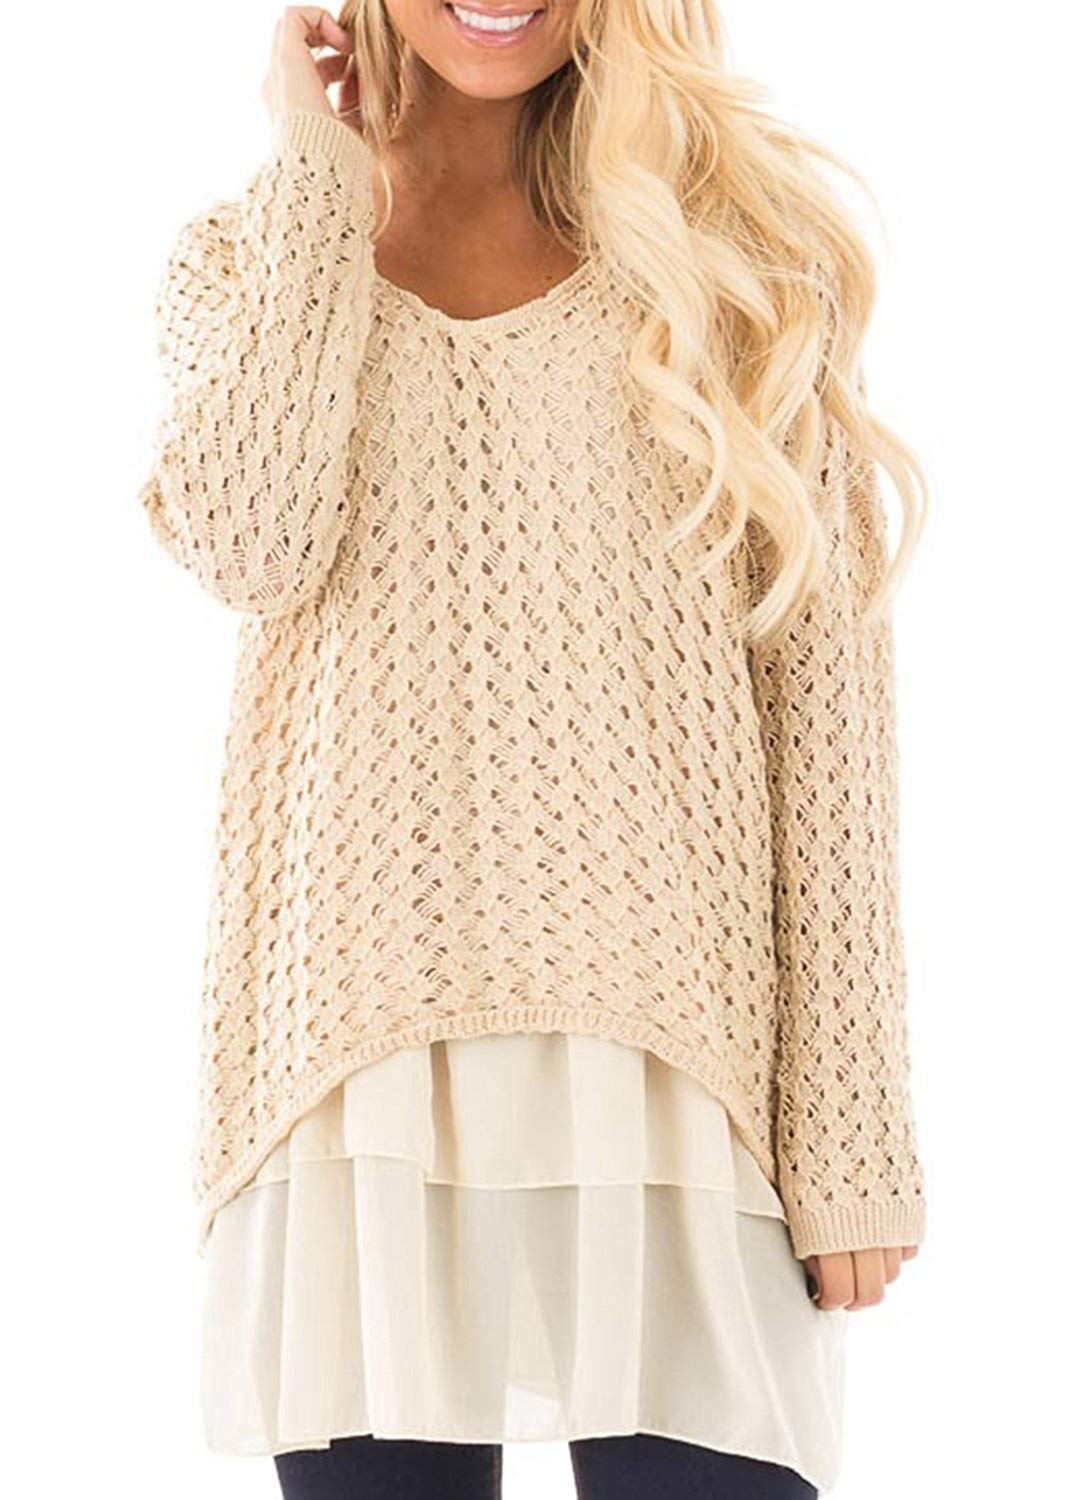 Haloumoning Womens Sweaters Fall Loose Round Neck Double Layer Cable Knit Pullover Dress (Medium, Beige)